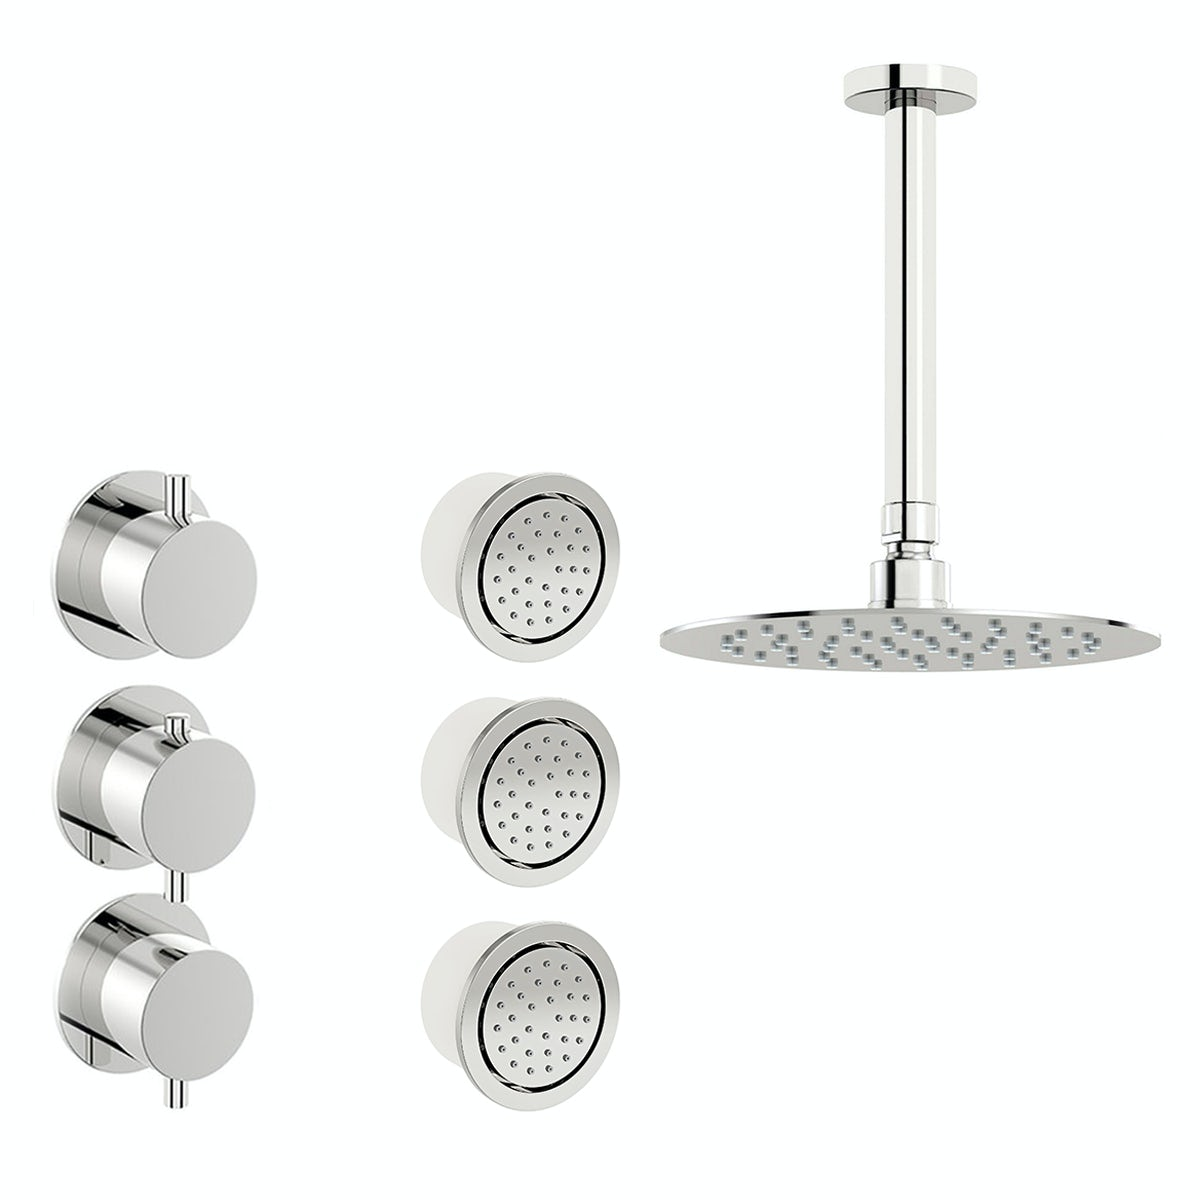 Mode Hardy thermostatic shower valve with body jets and ceiling shower set